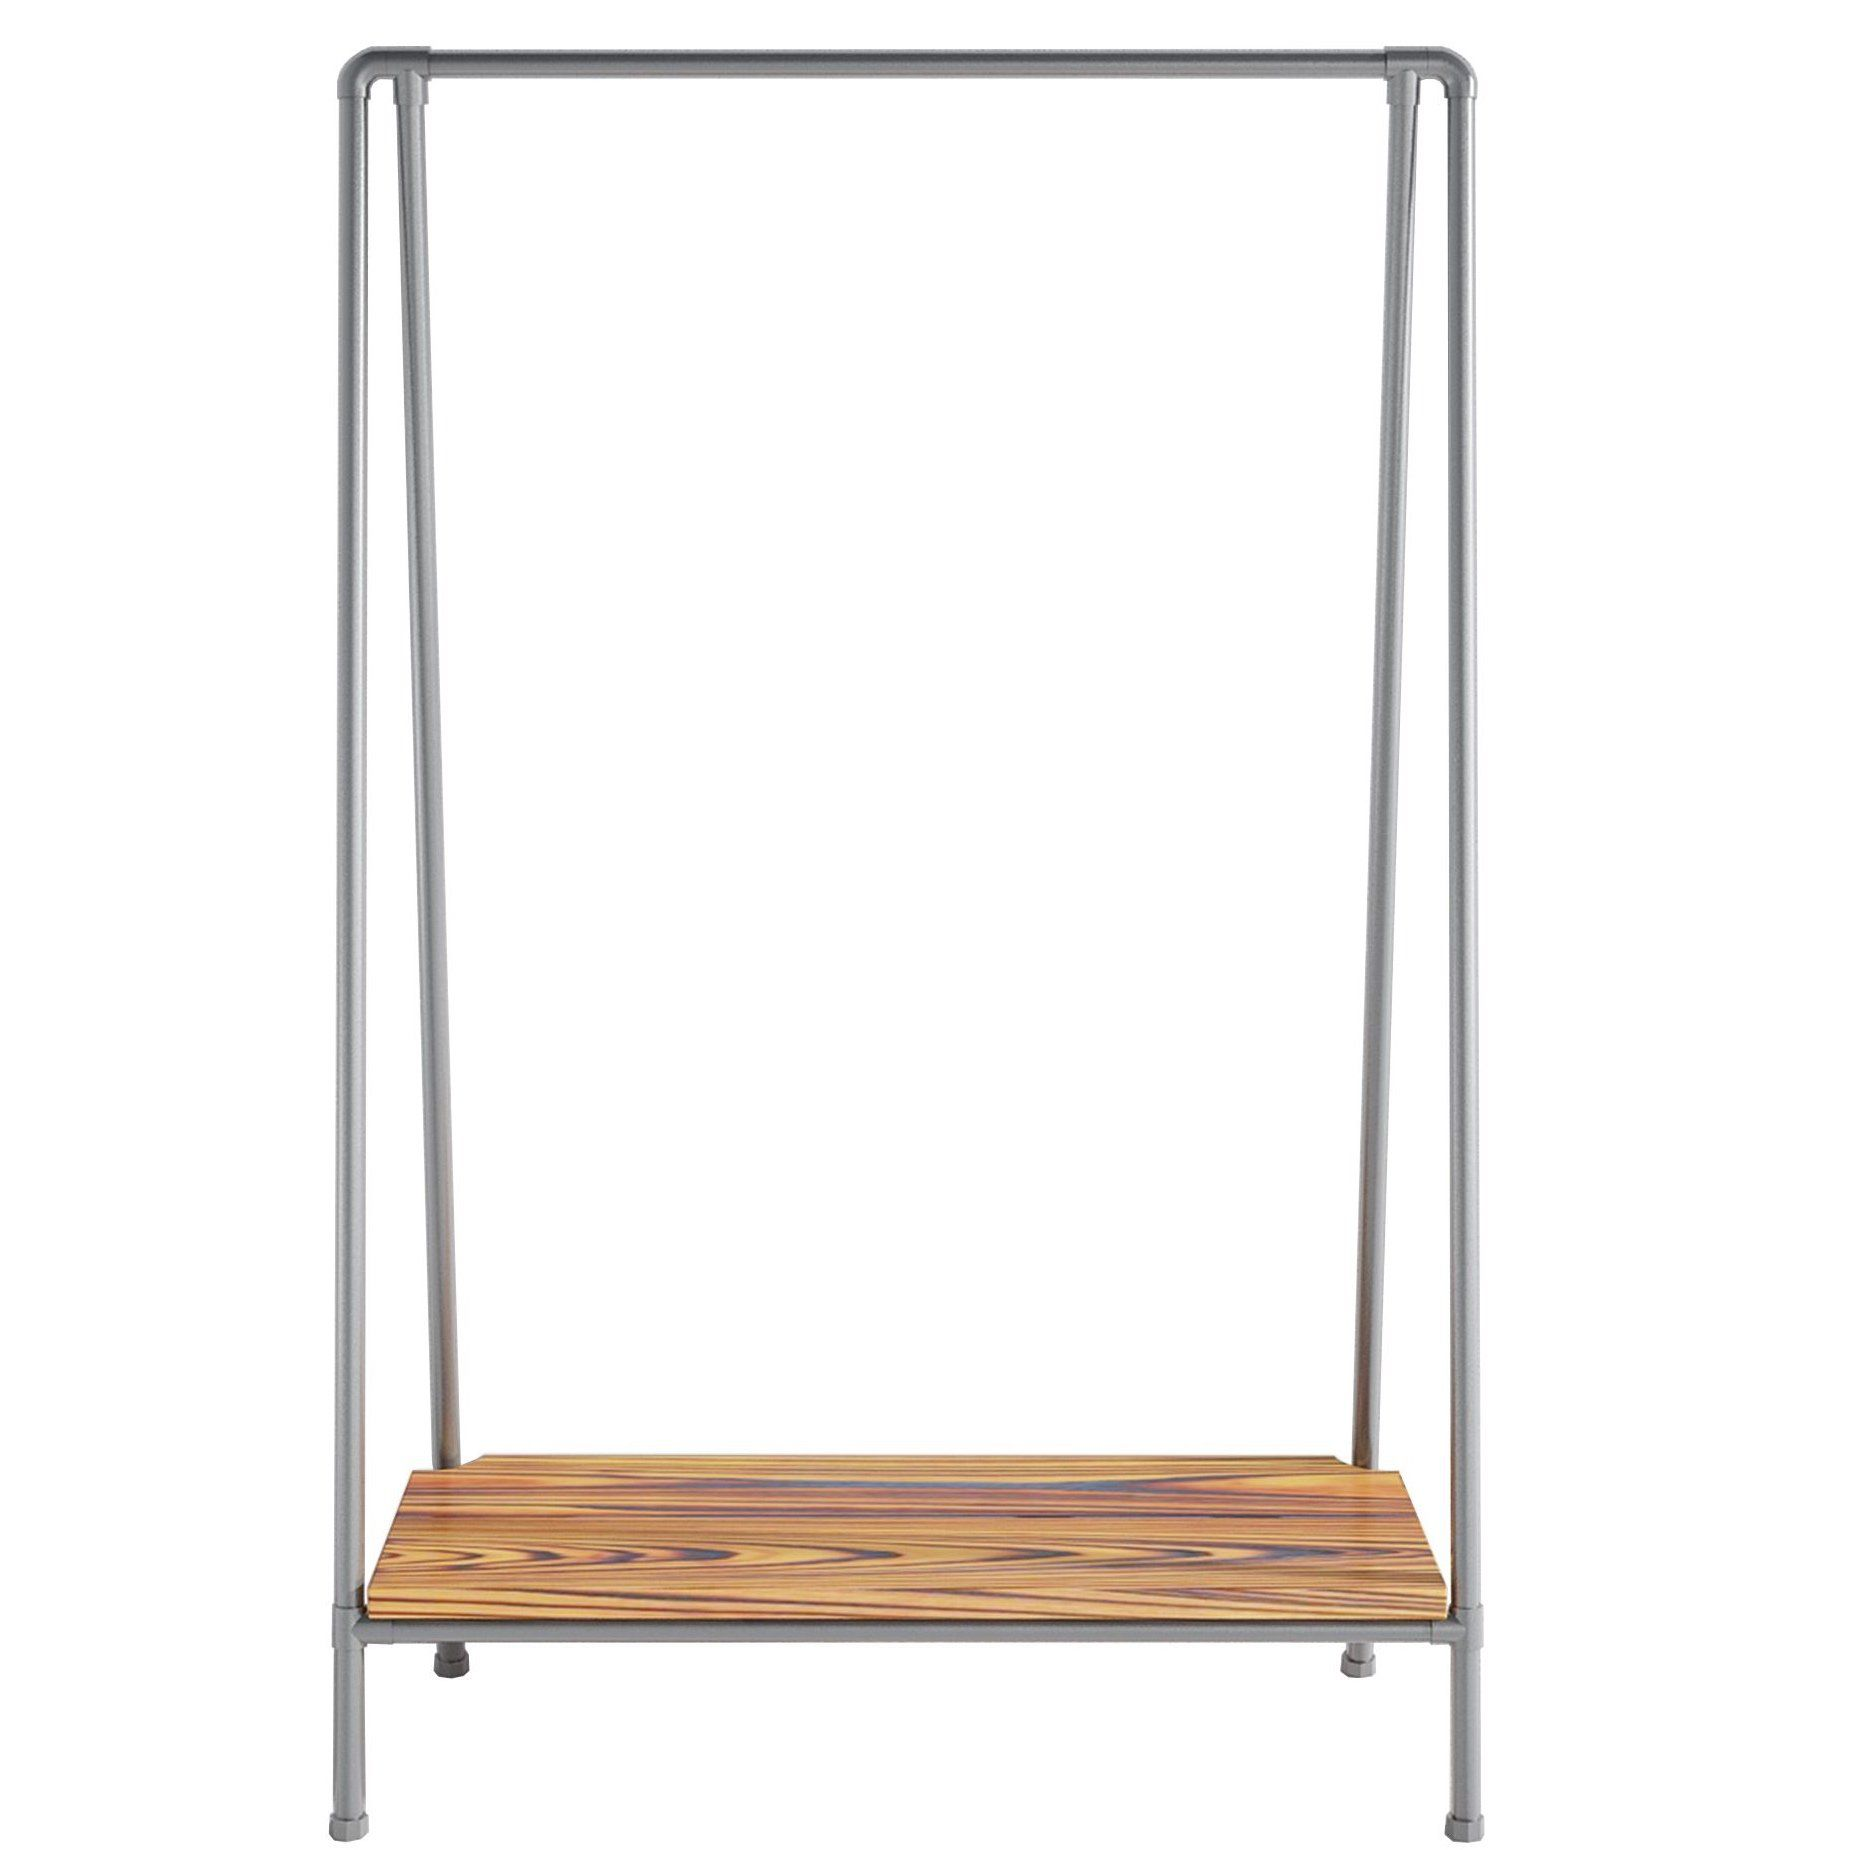 Ziito Swing Low clothes rack with a low shelf